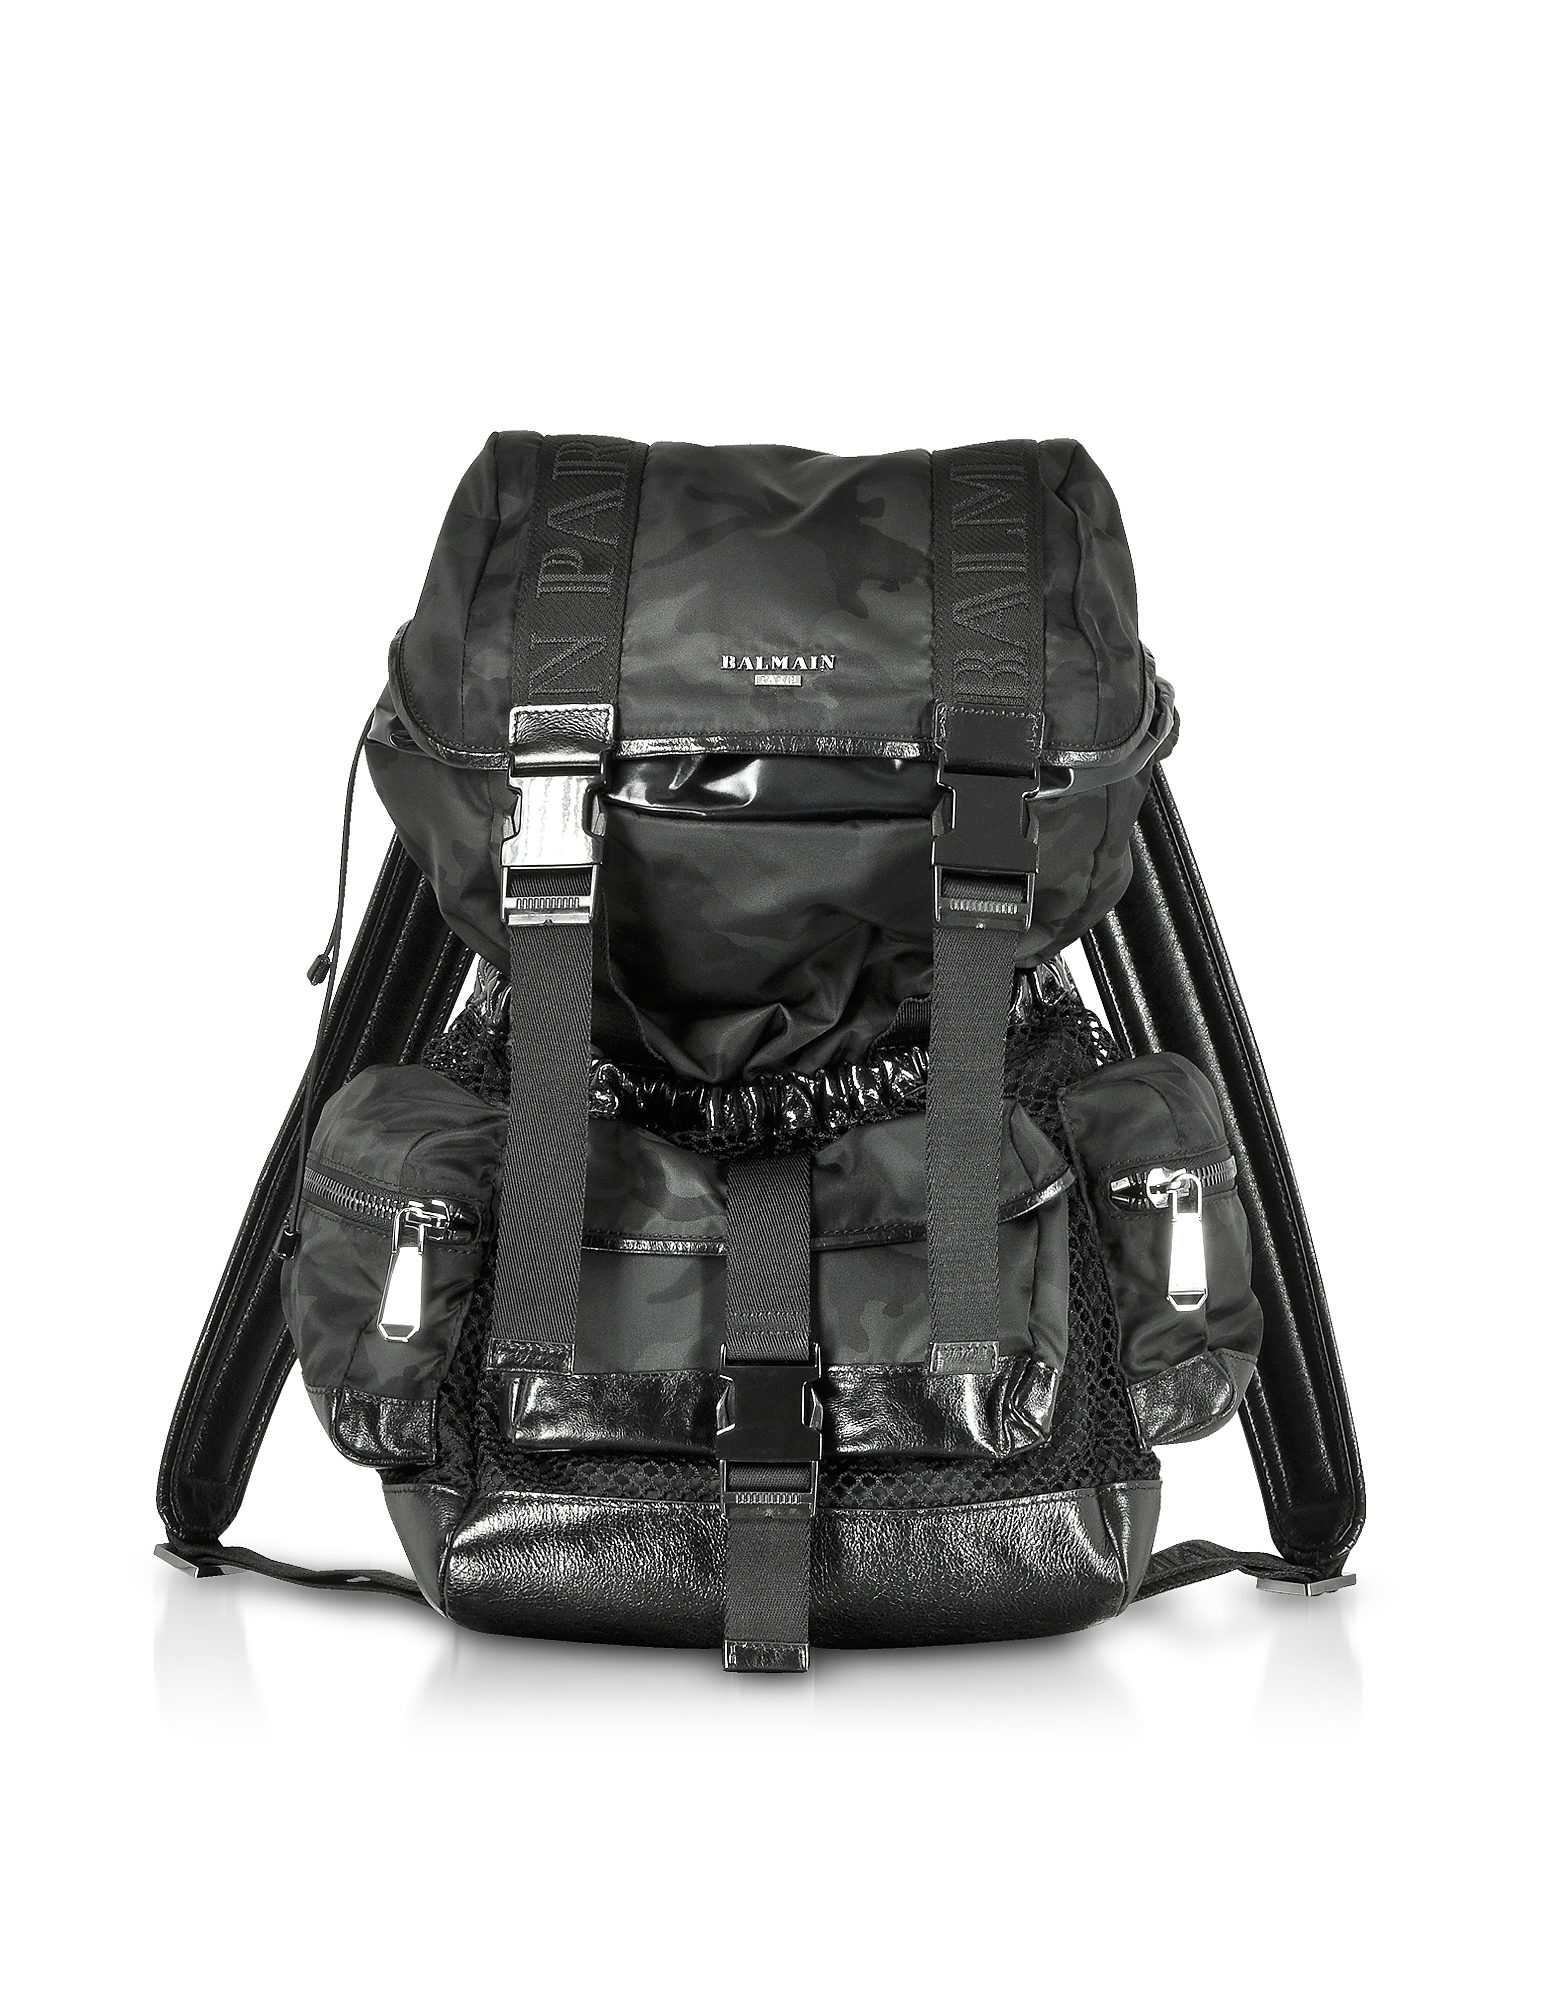 Image of Balmain Designer Backpacks, Black Camouflage Nylon and Leather Elite Backpack